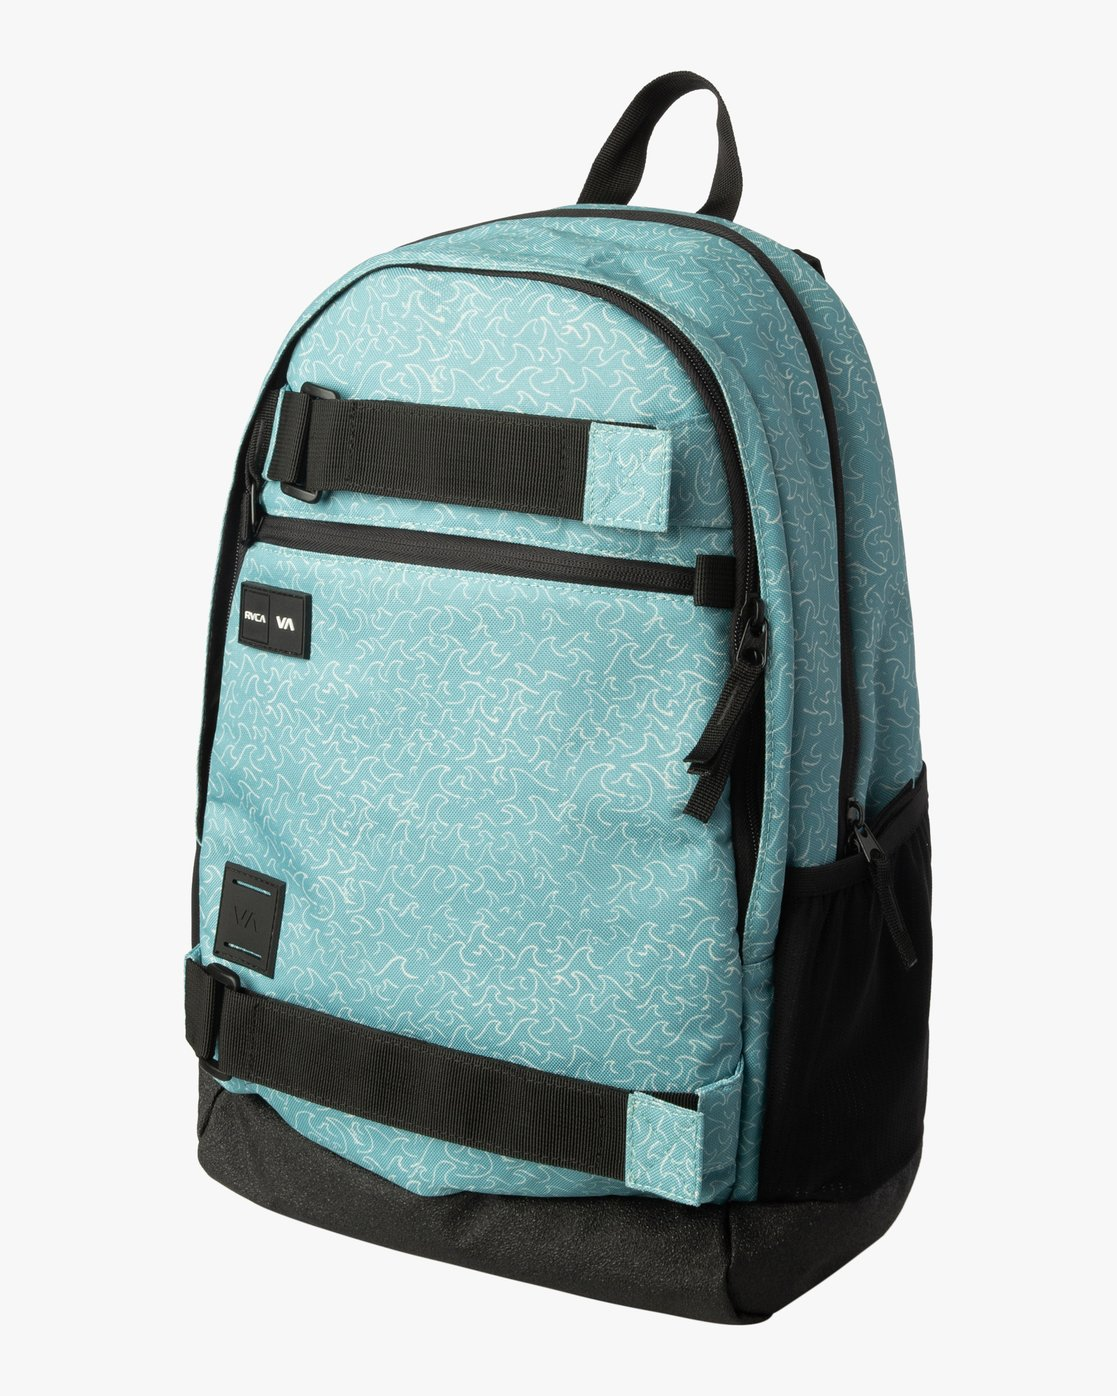 0 CURB BACKPACK III Brown MABK2RCB RVCA